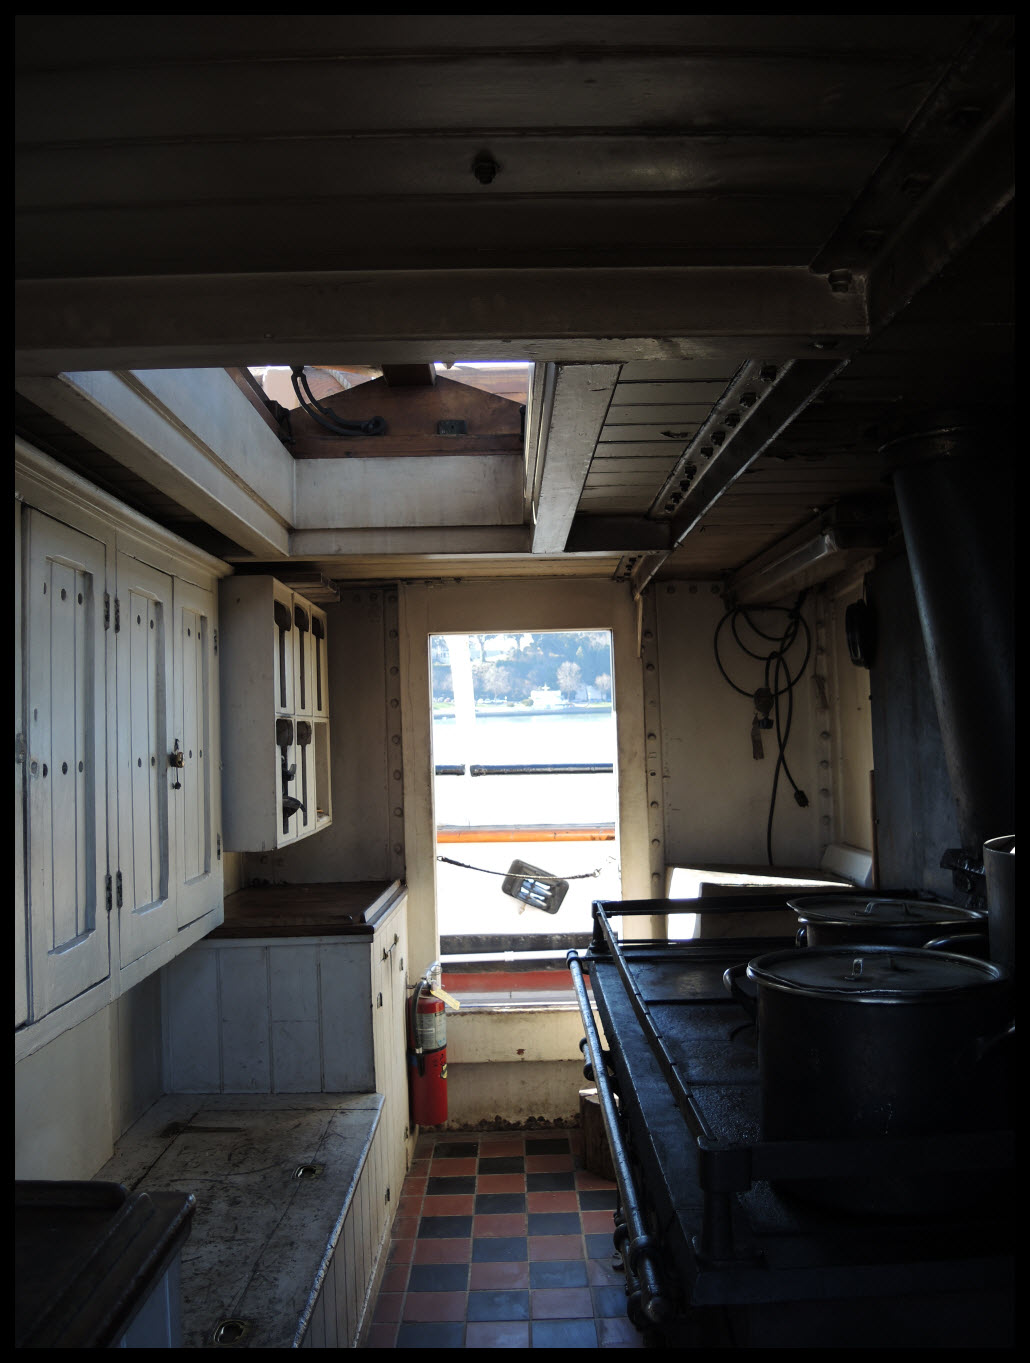 If I was a cook on an early 20th century ship, this is where I would prepare meals. Yikes